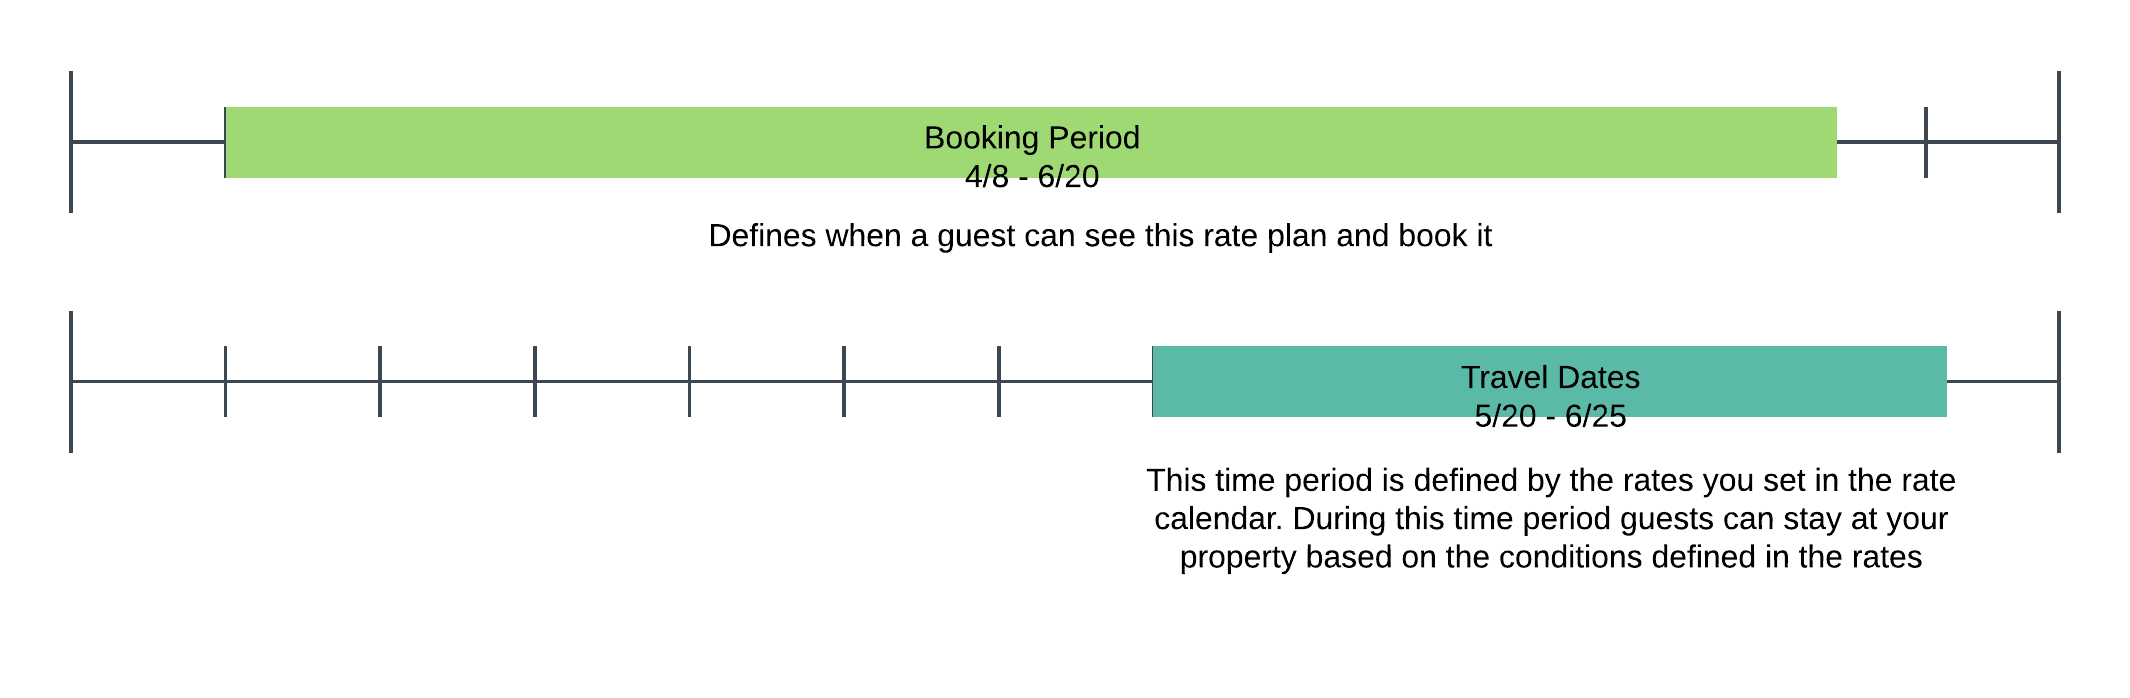 BookingPeriods.png